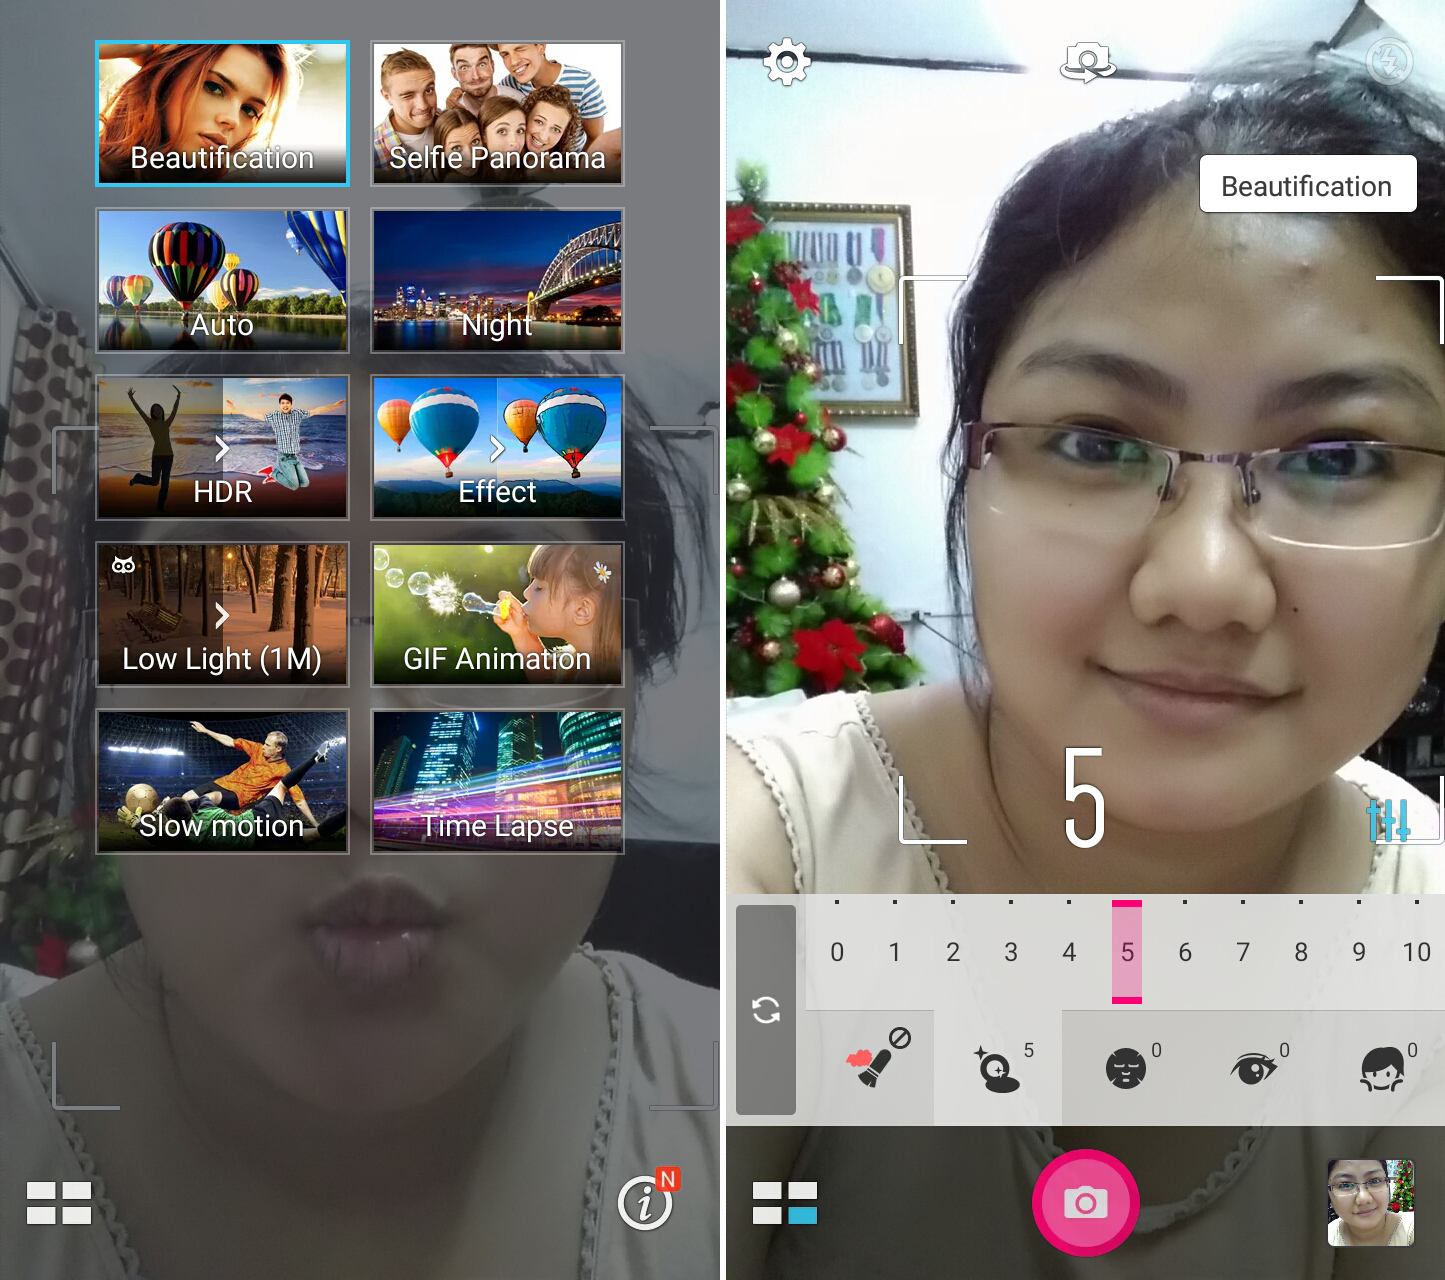 Real-time Beautification Mode